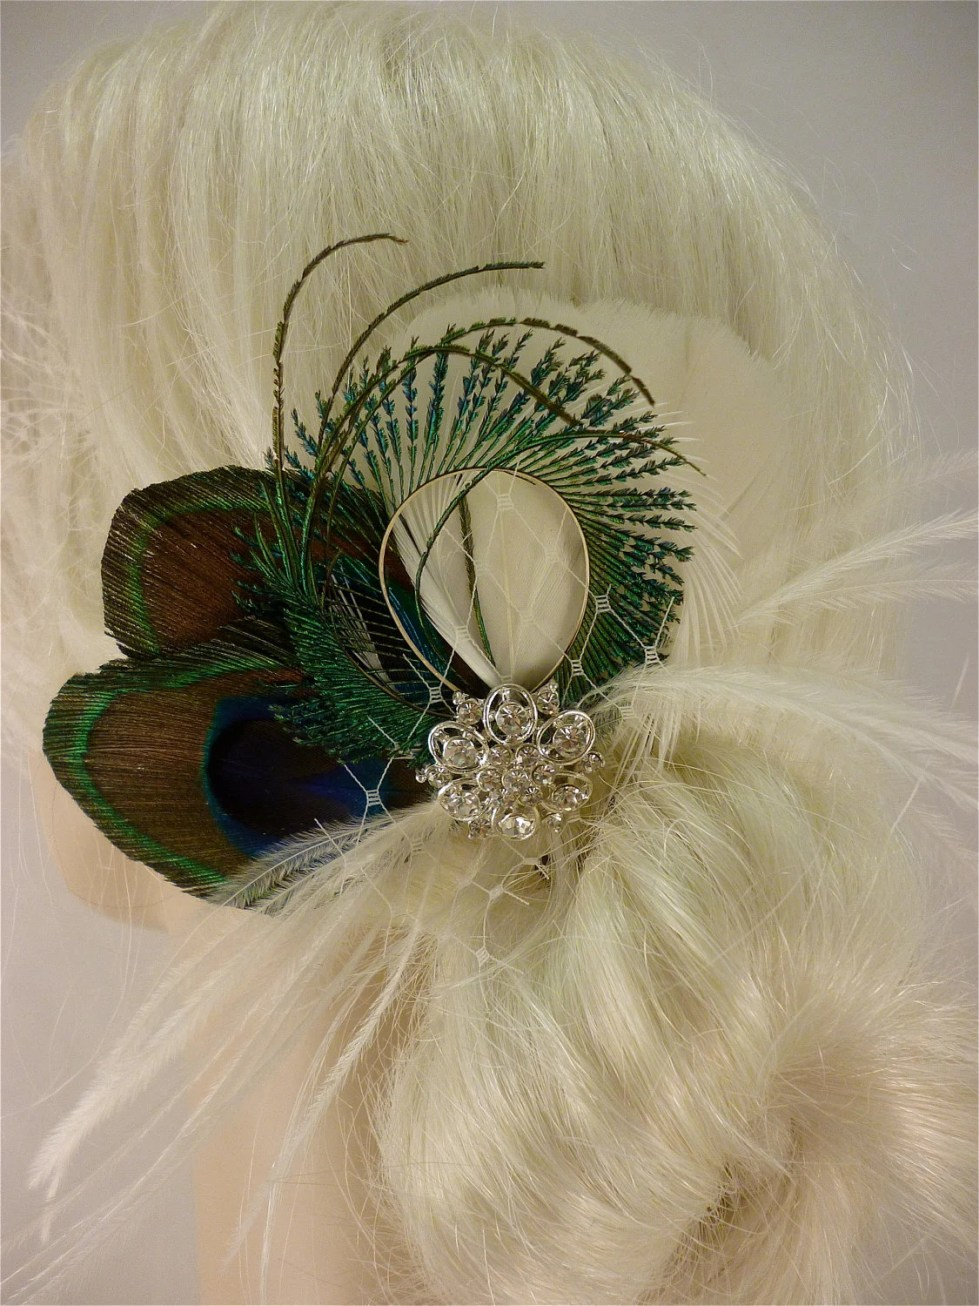 Bridal Feather Fascinator, Bridal Fascinator, Feather Fascinator, Fascinator, Wedding Veil, Bridal Headpiece, Bridal Veil, Peacock